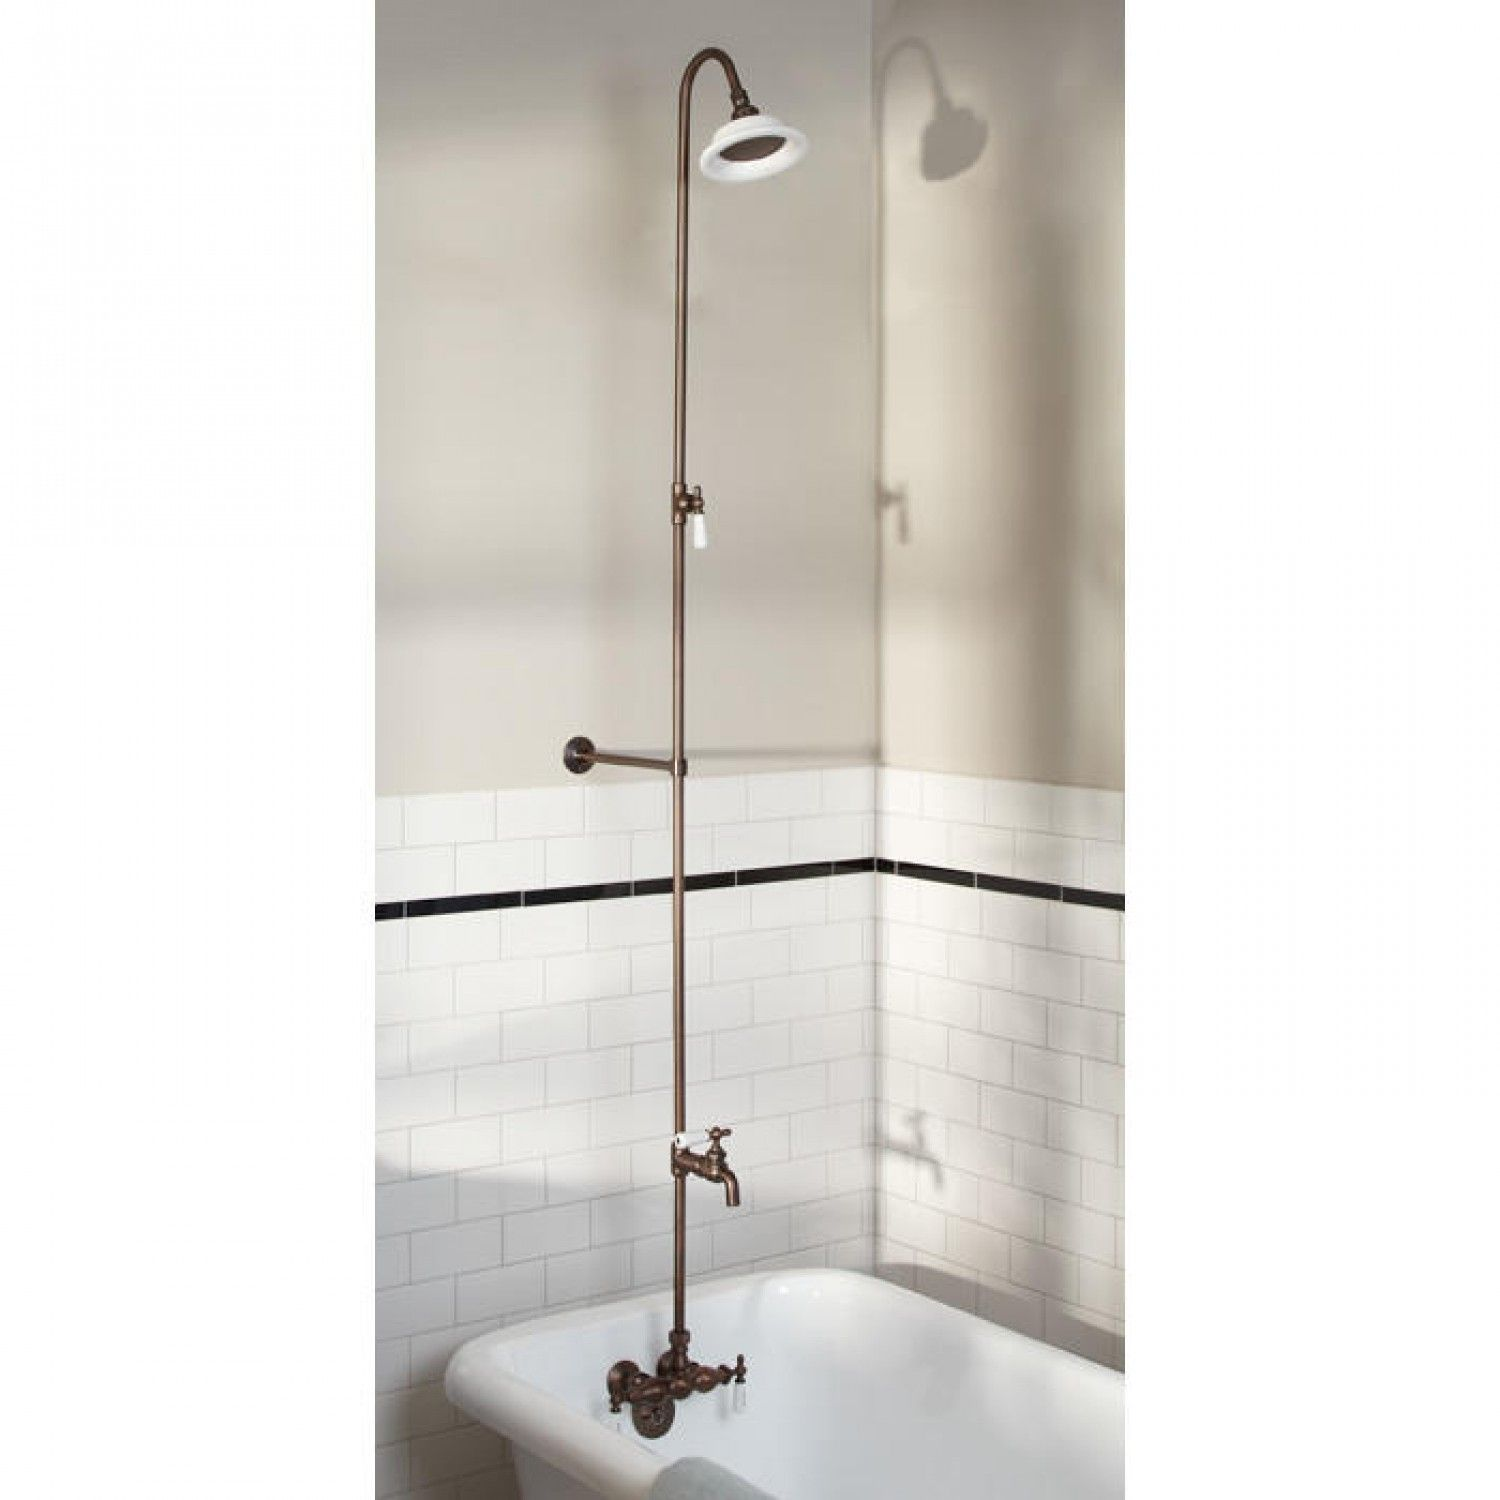 This exposed pipe shower comes with everything you need including faucet with cross handles